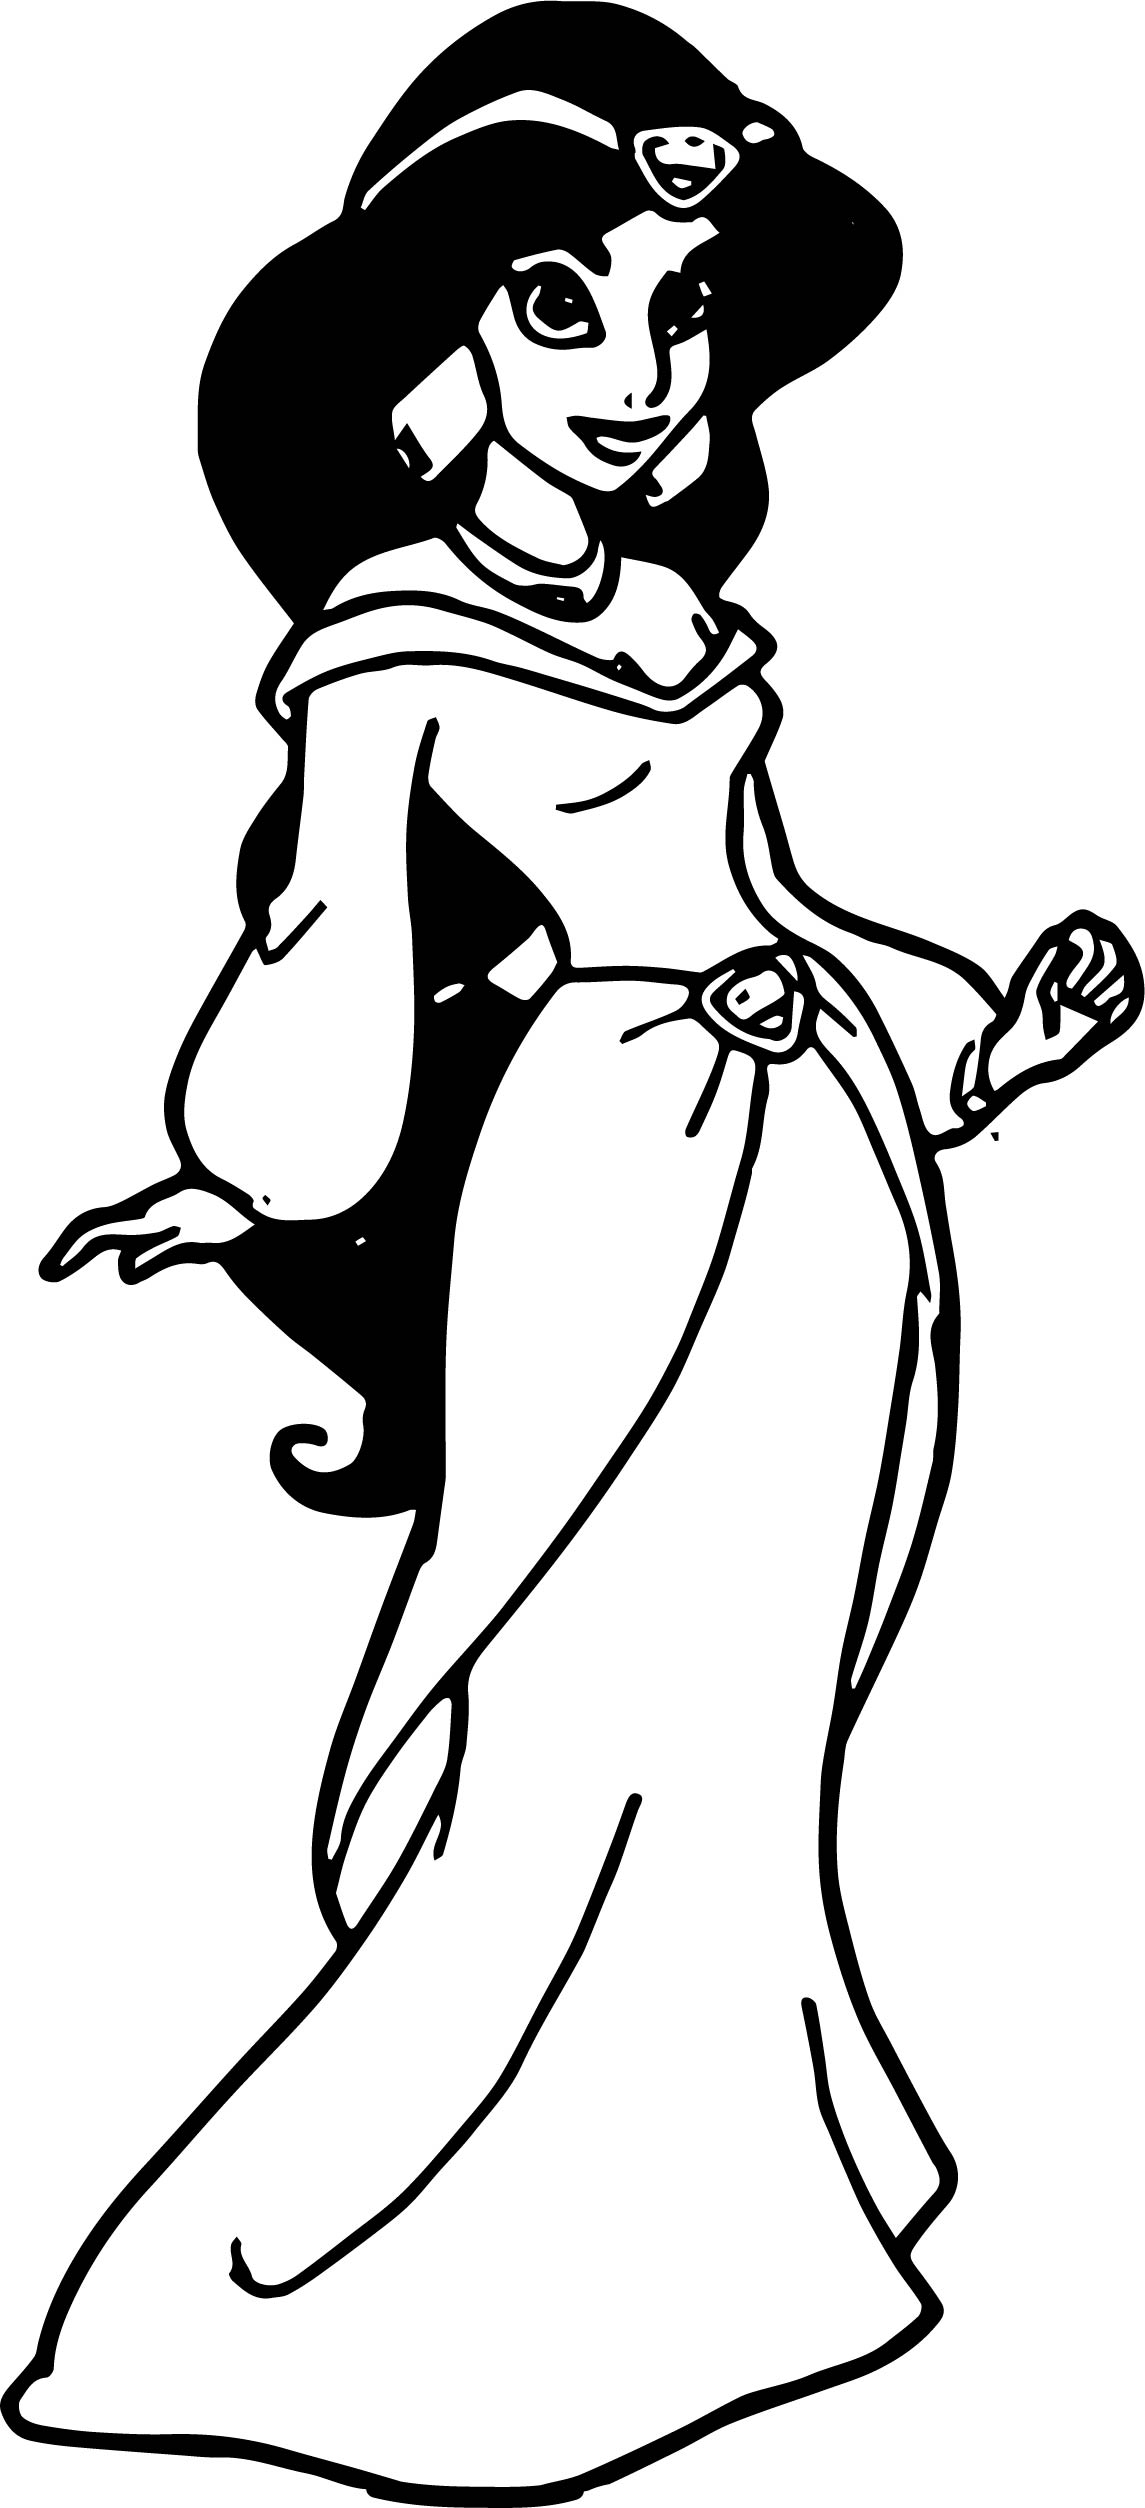 Just Jasmine Coloring Page